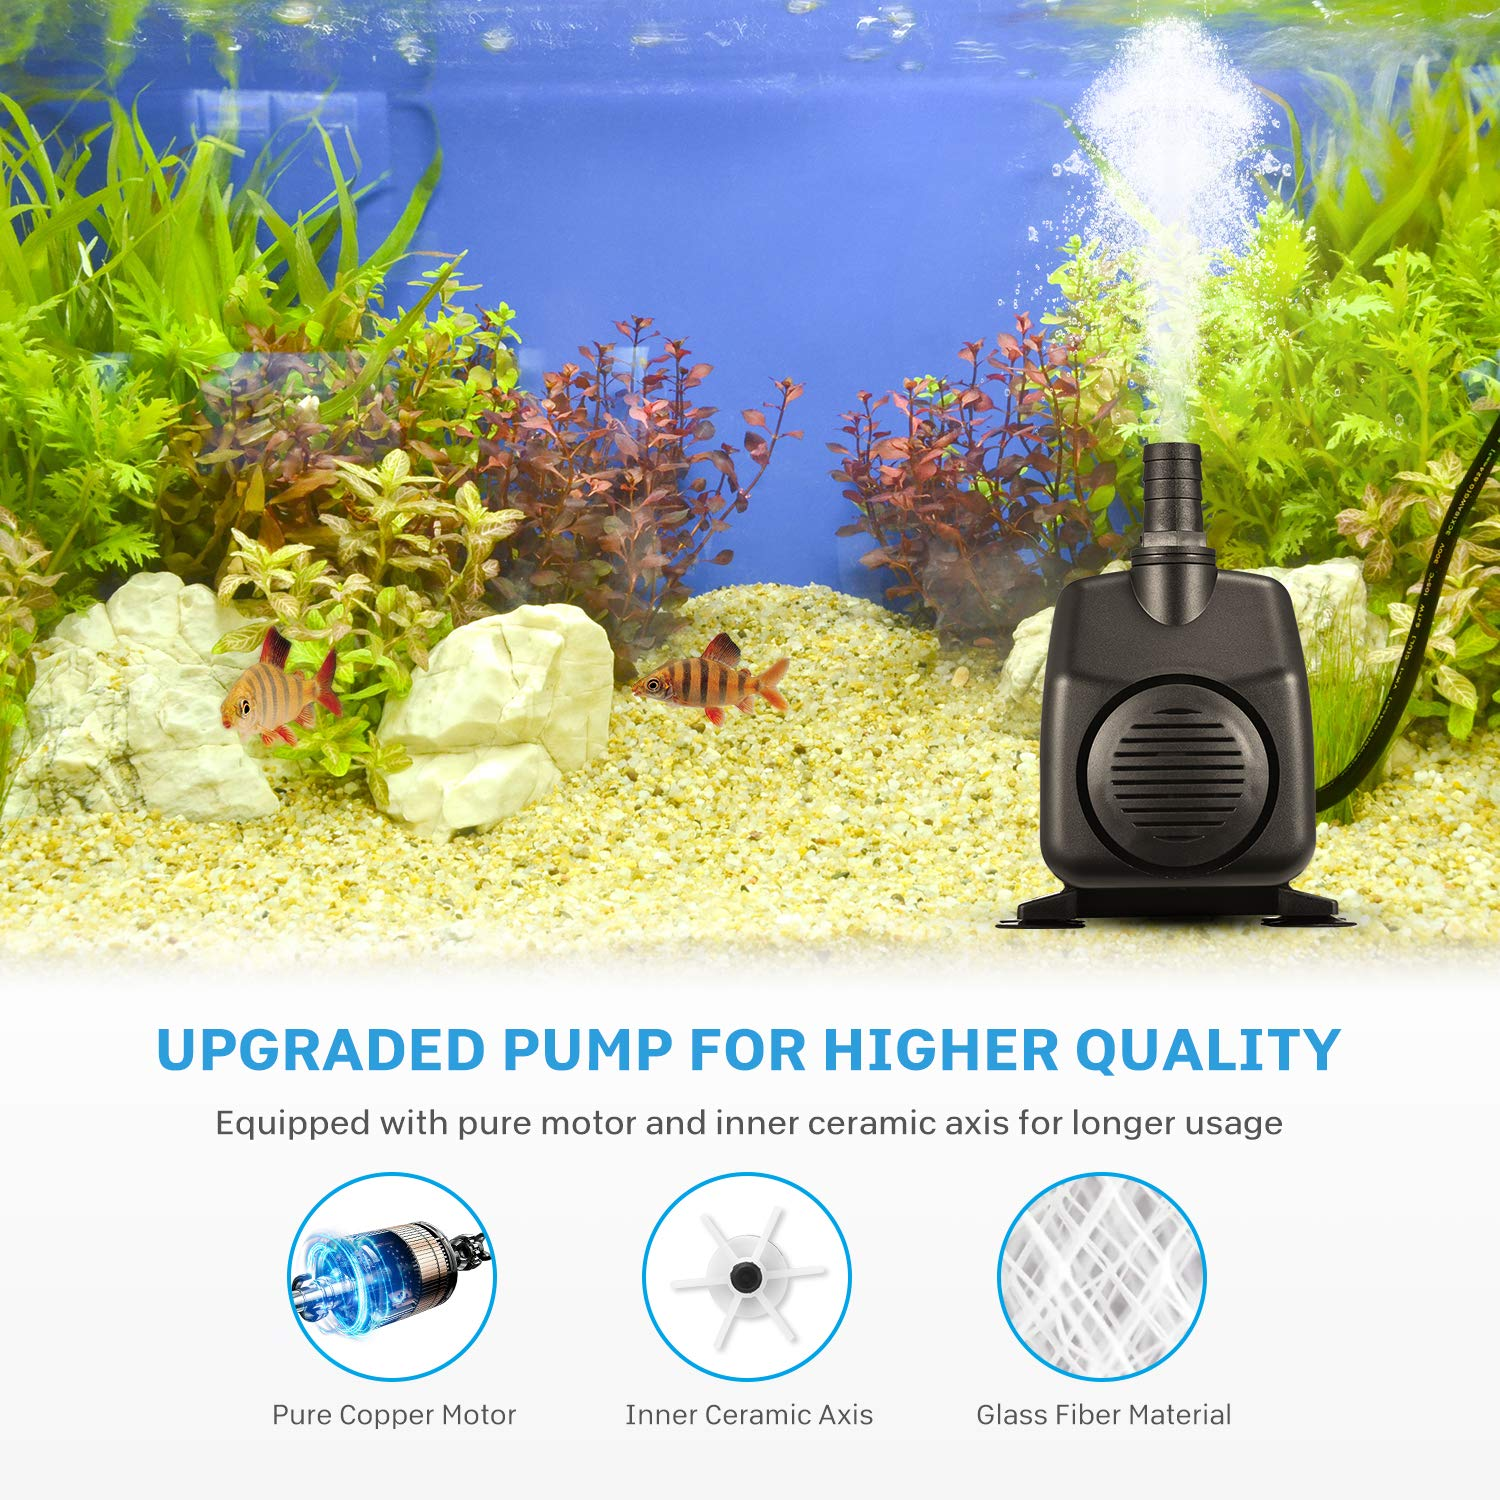 Homasy 920GPH Submersible Pump(60W, 3500L/H), Ultra Quiet Fountain Water Pump with 10ft High Lift, 3 Nozzles, 5.9ft Power Cord for Aquarium, Fish Tank, Pond, Hydroponics, Statuary, Blue